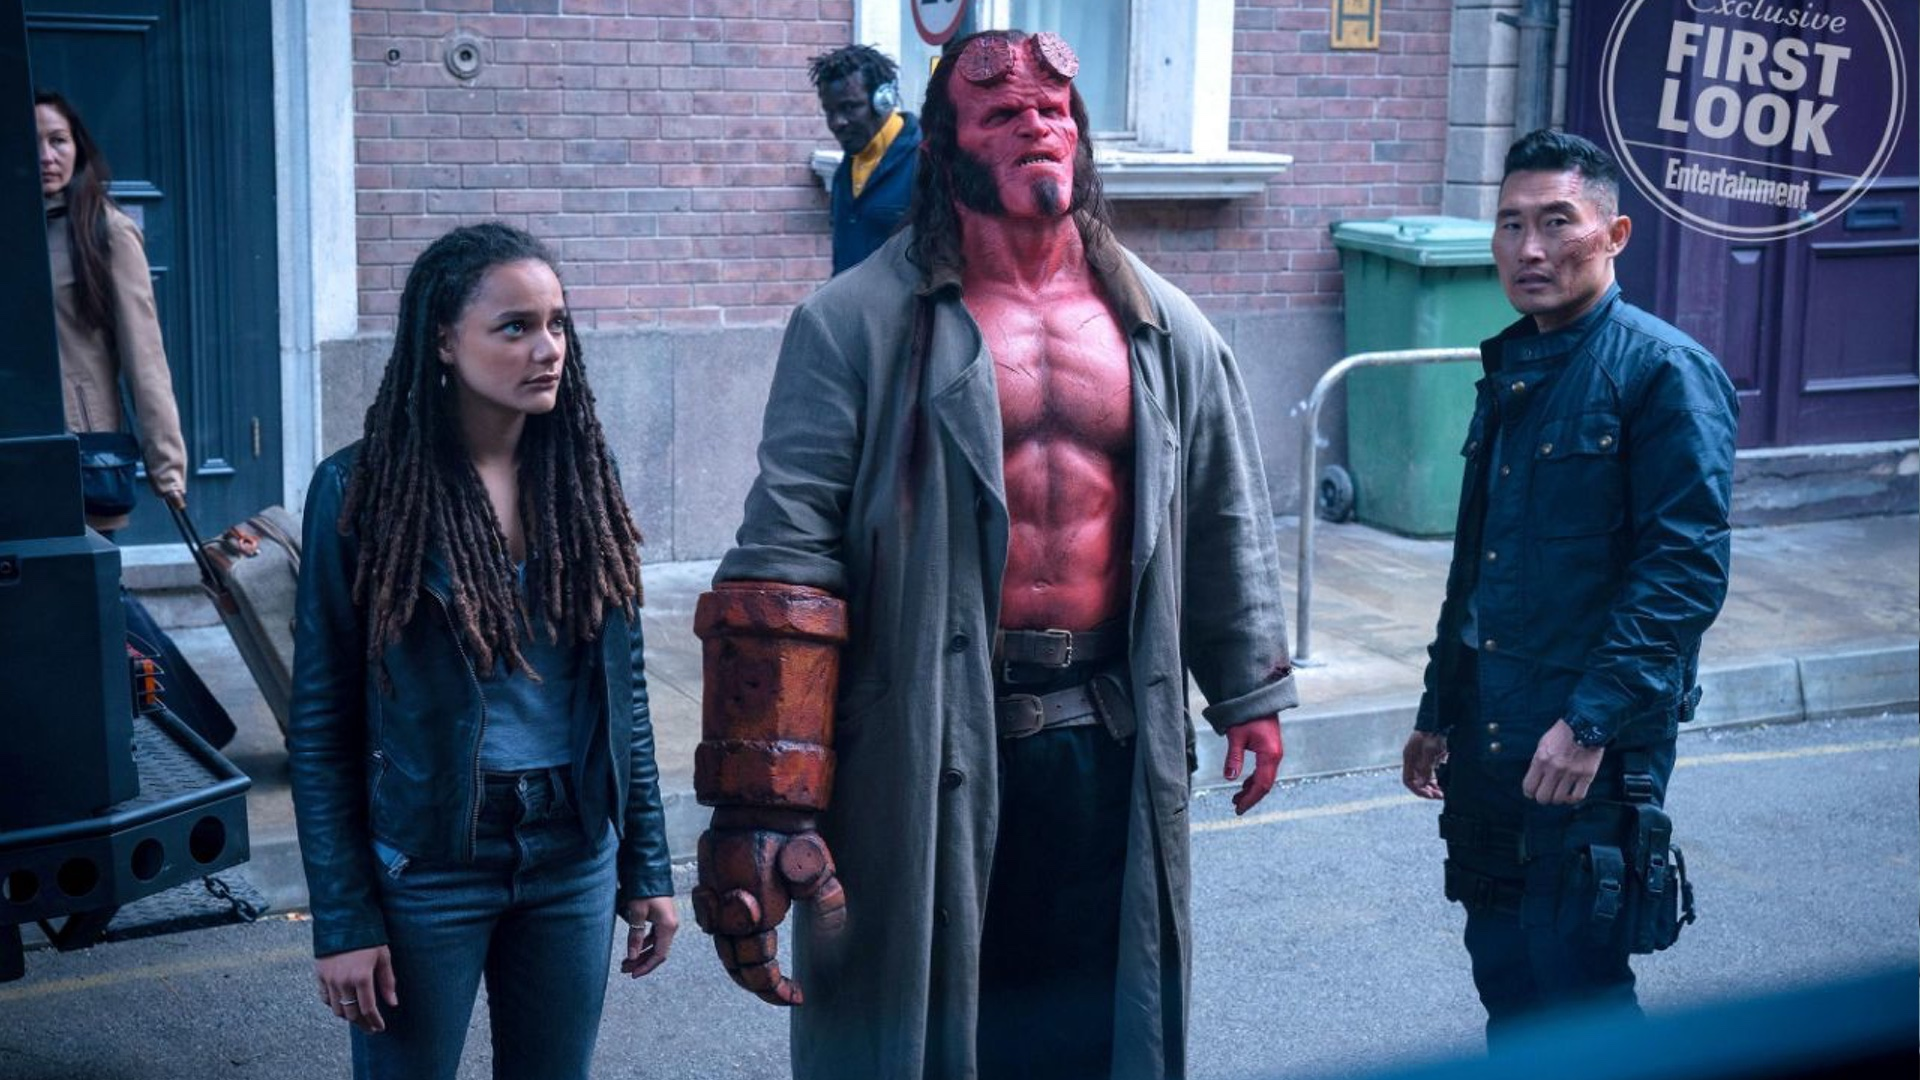 Hellboy has to save the world with the help of Alice (Sasha Lane) and Ben Daimo (Daniel Dae Kim).